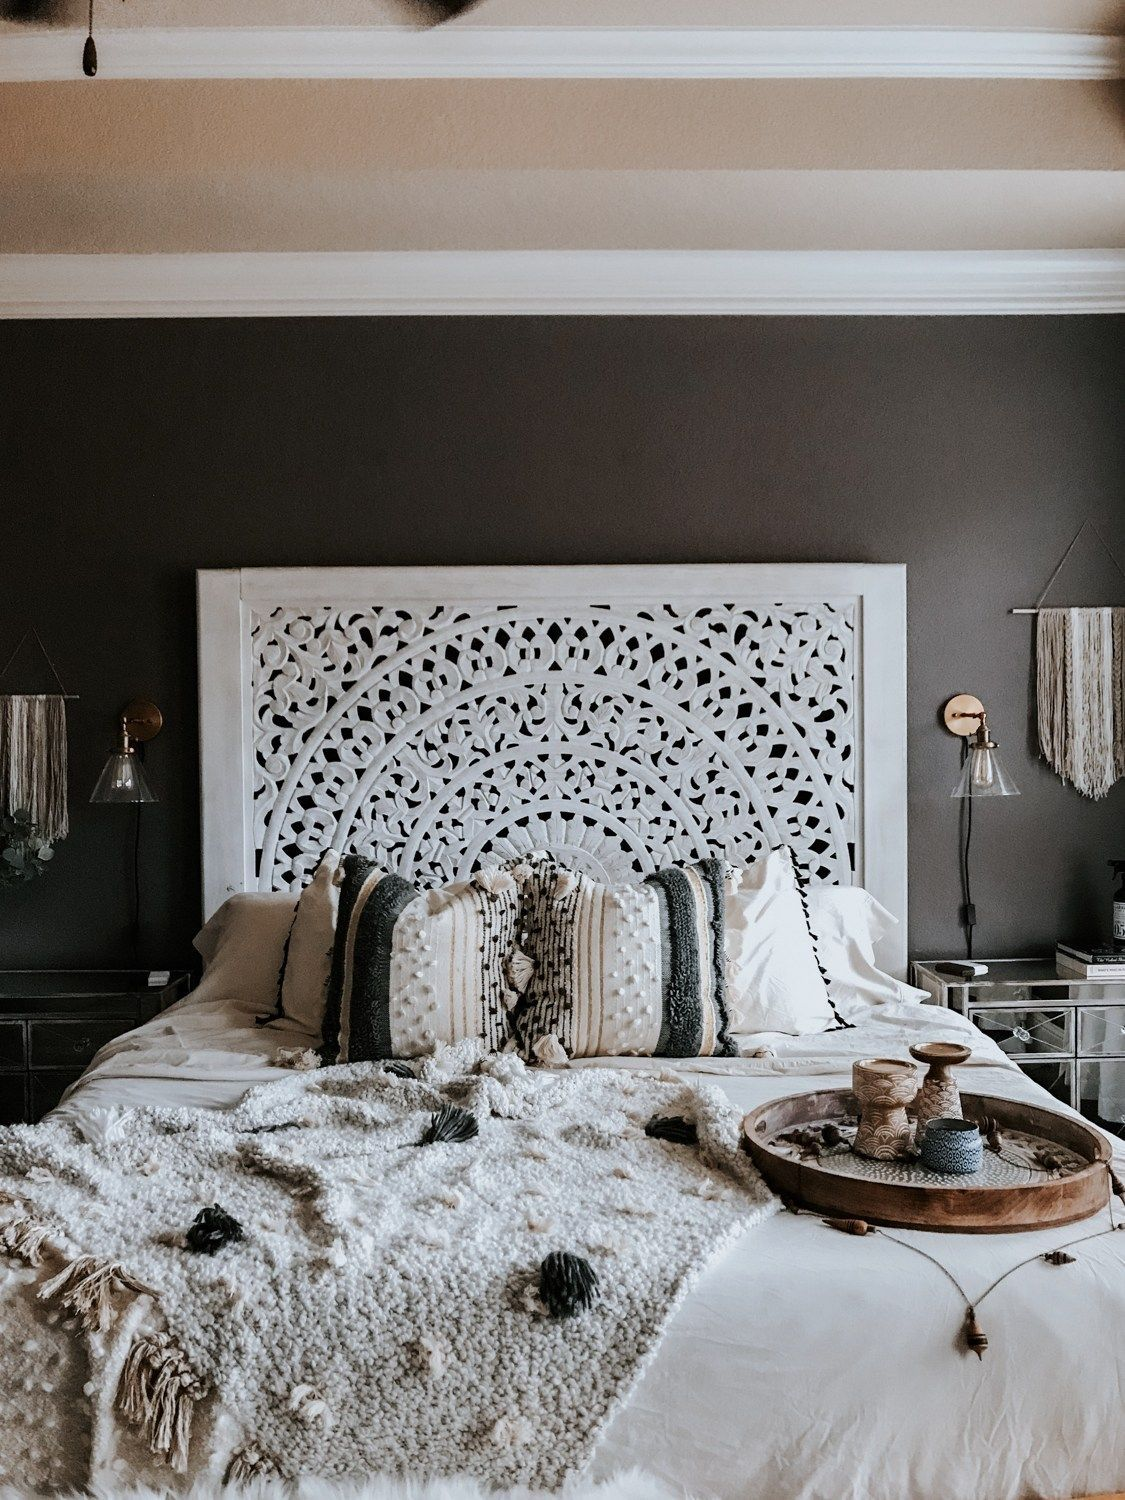 Express Your Individuality With Boho Home Decor With Images Chic Master Bedroom Boho Master Bedroom Boho Chic Bedroom